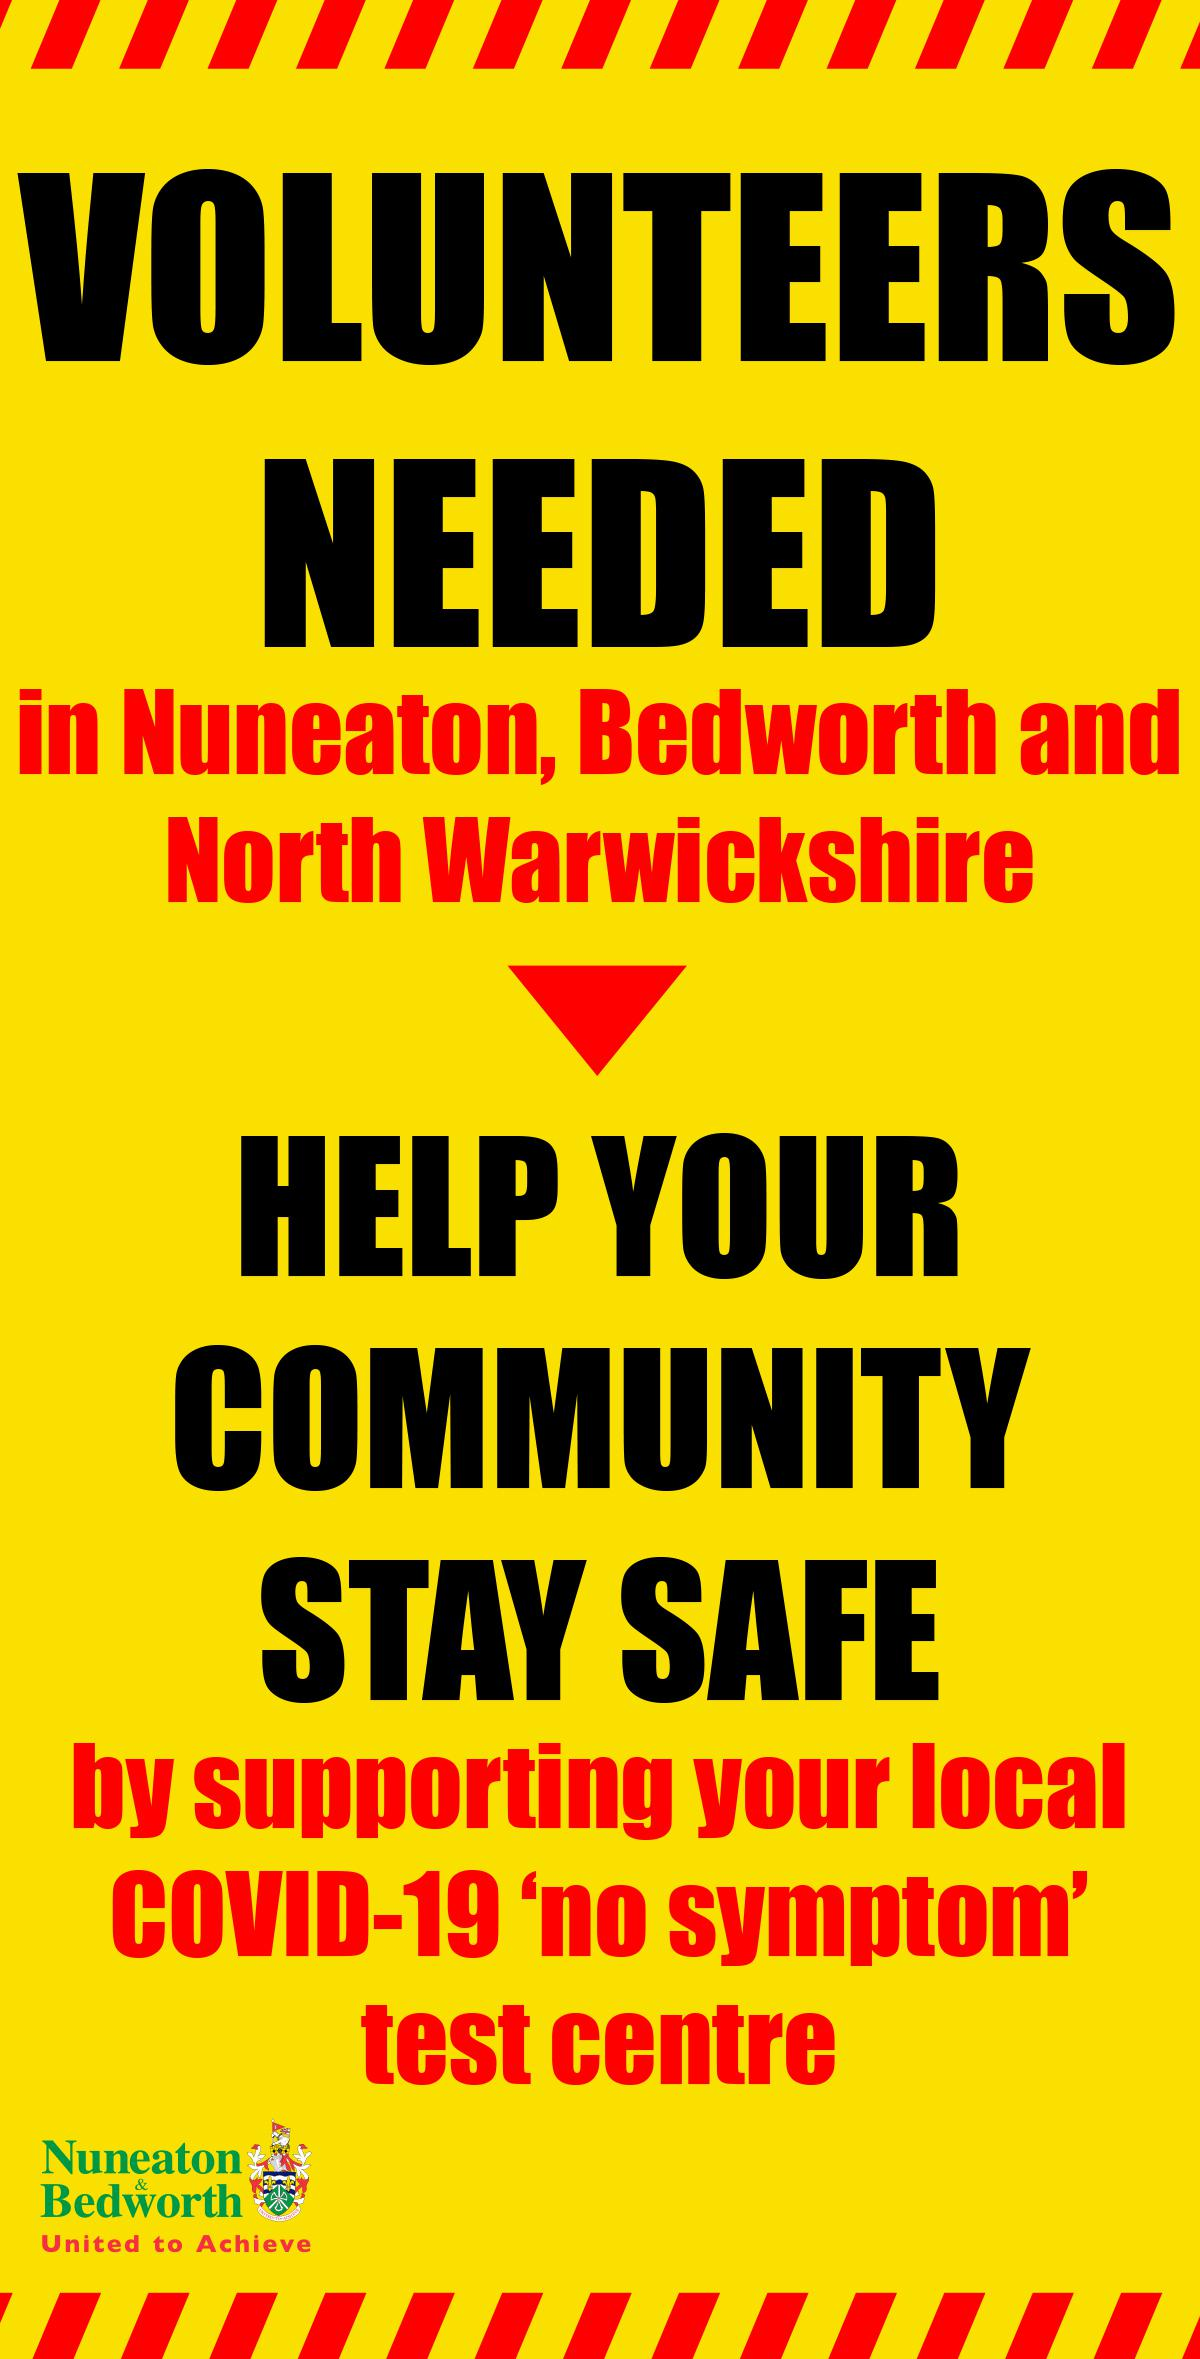 Volunteers needed in Nuneaton, Bedworth and North Warwickshire    Help your community stay safe by supporting your local COVID-19 'no symptom' test centre